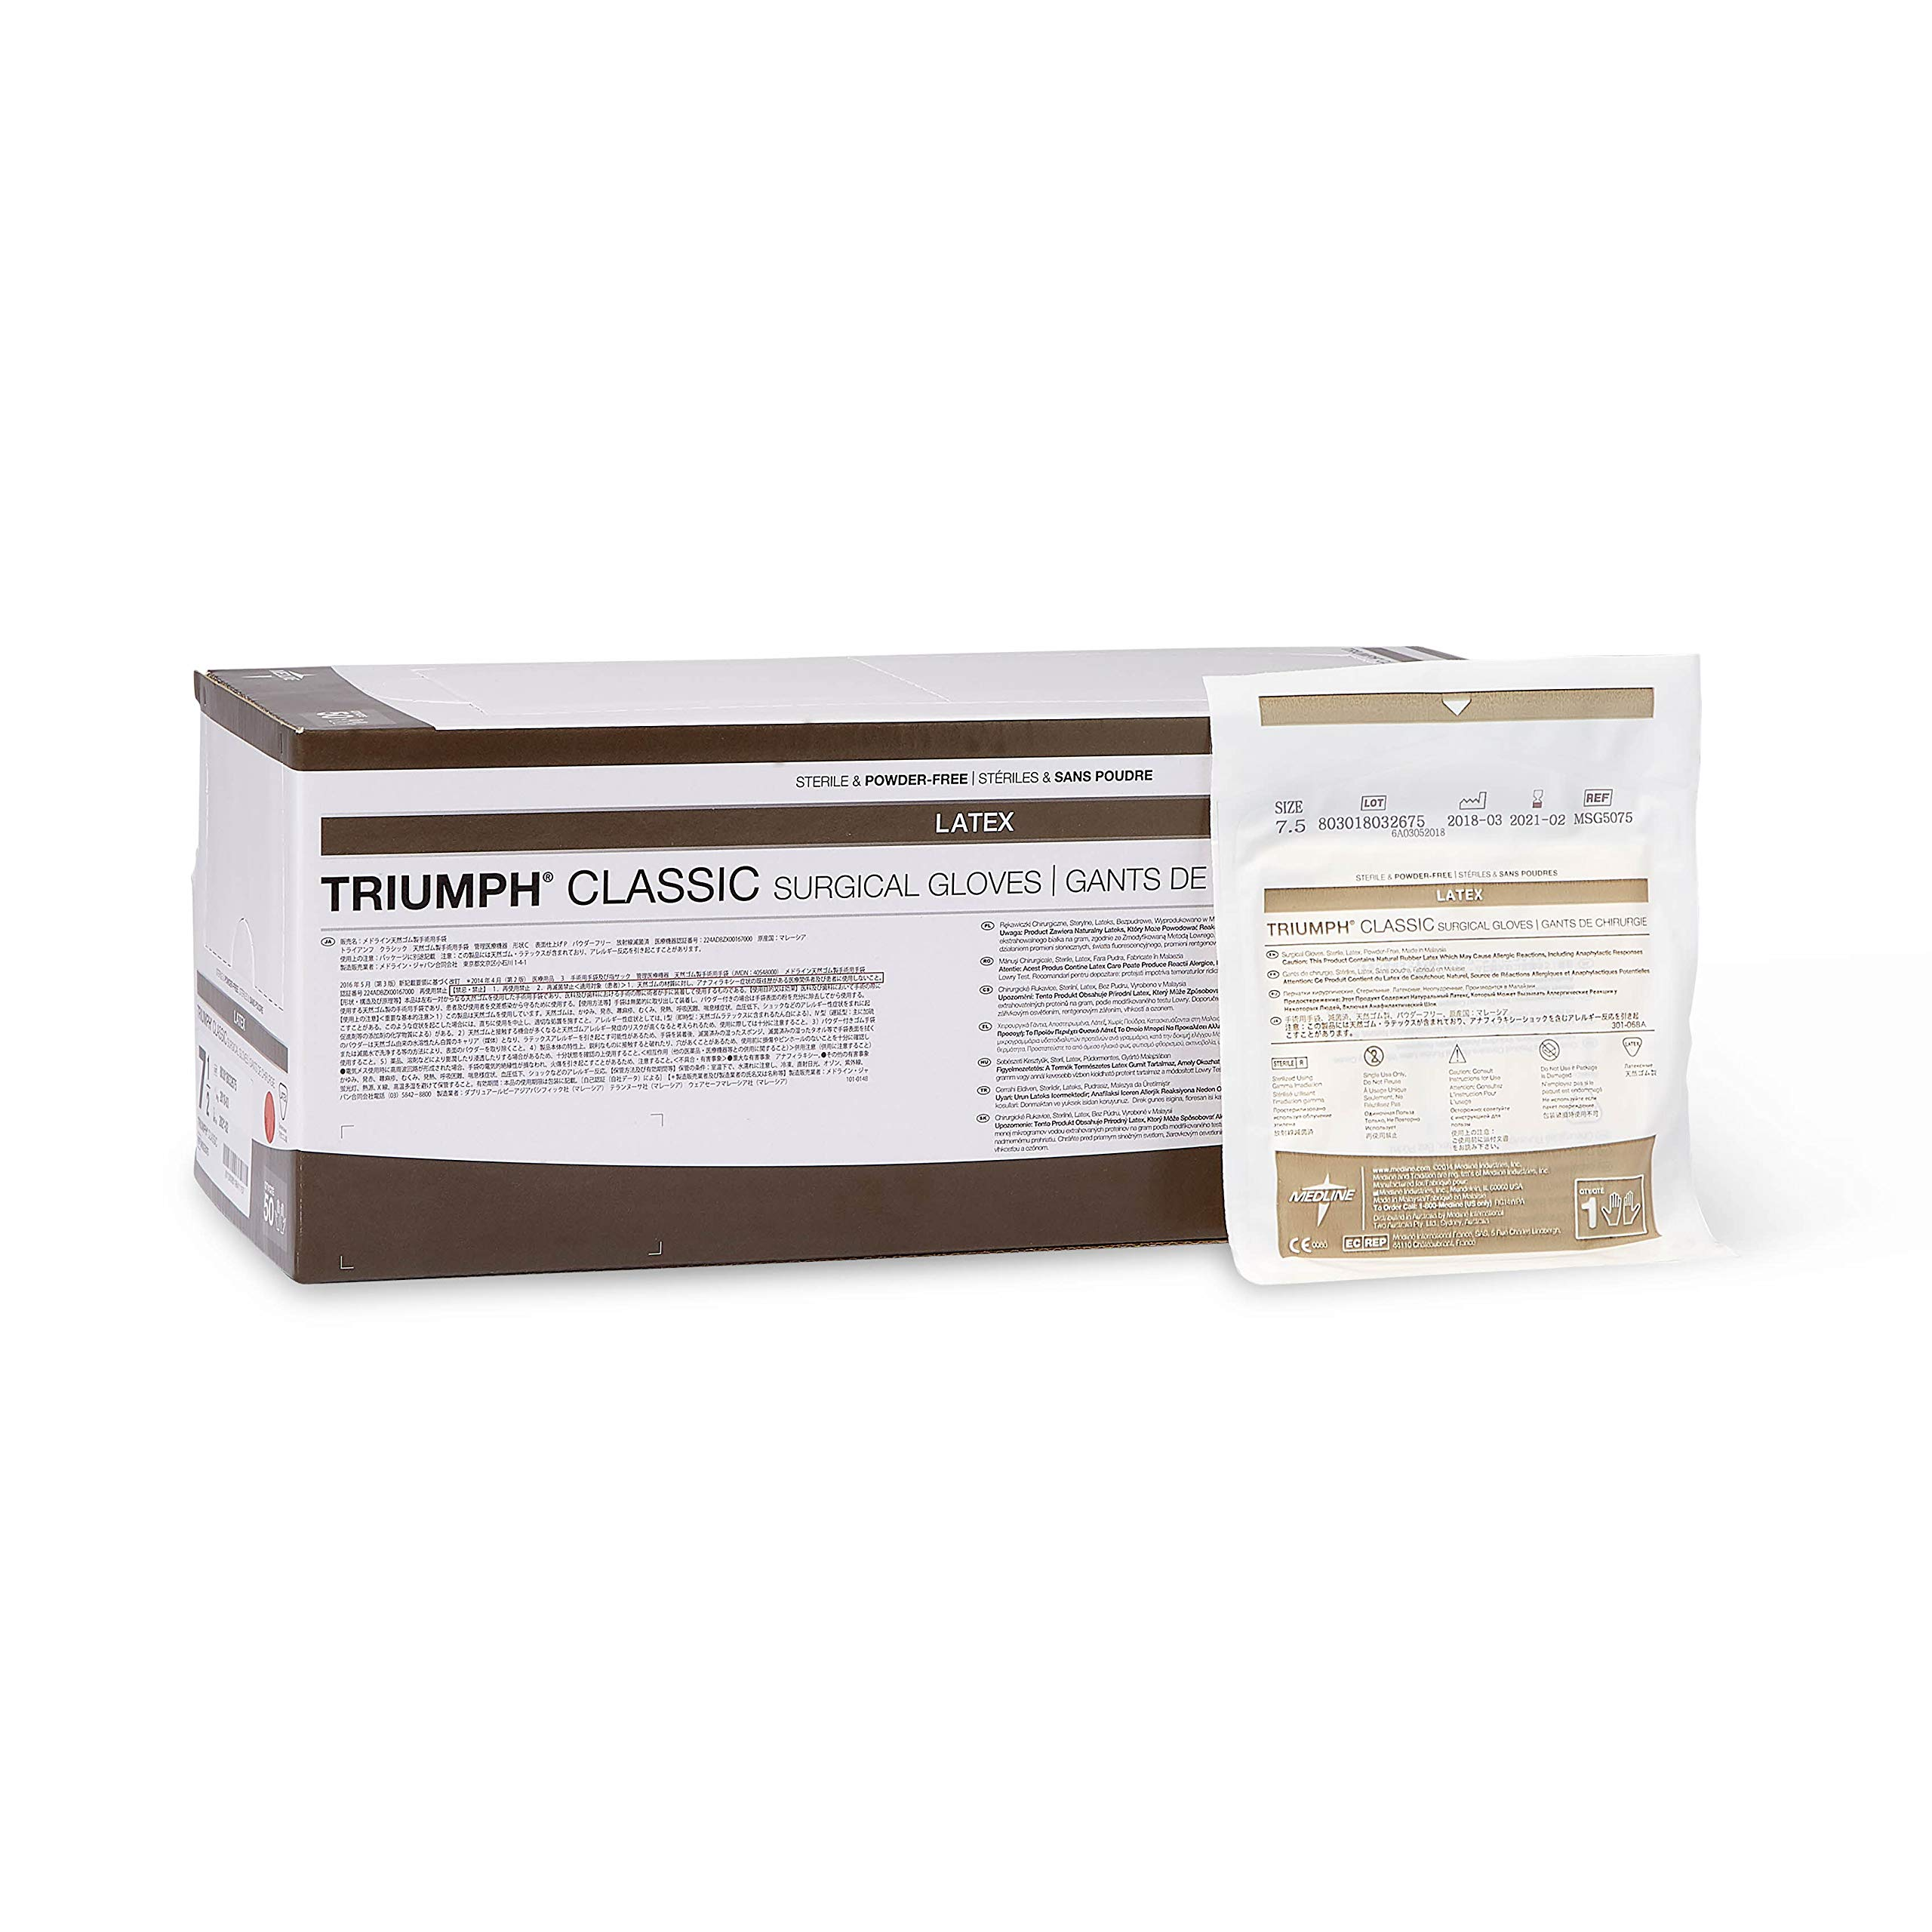 Medline MSG5075 Triumph Classic Sterile Powder-Free Latex Surgical Glove, Size 7.5 (Pack of 200) by Medline